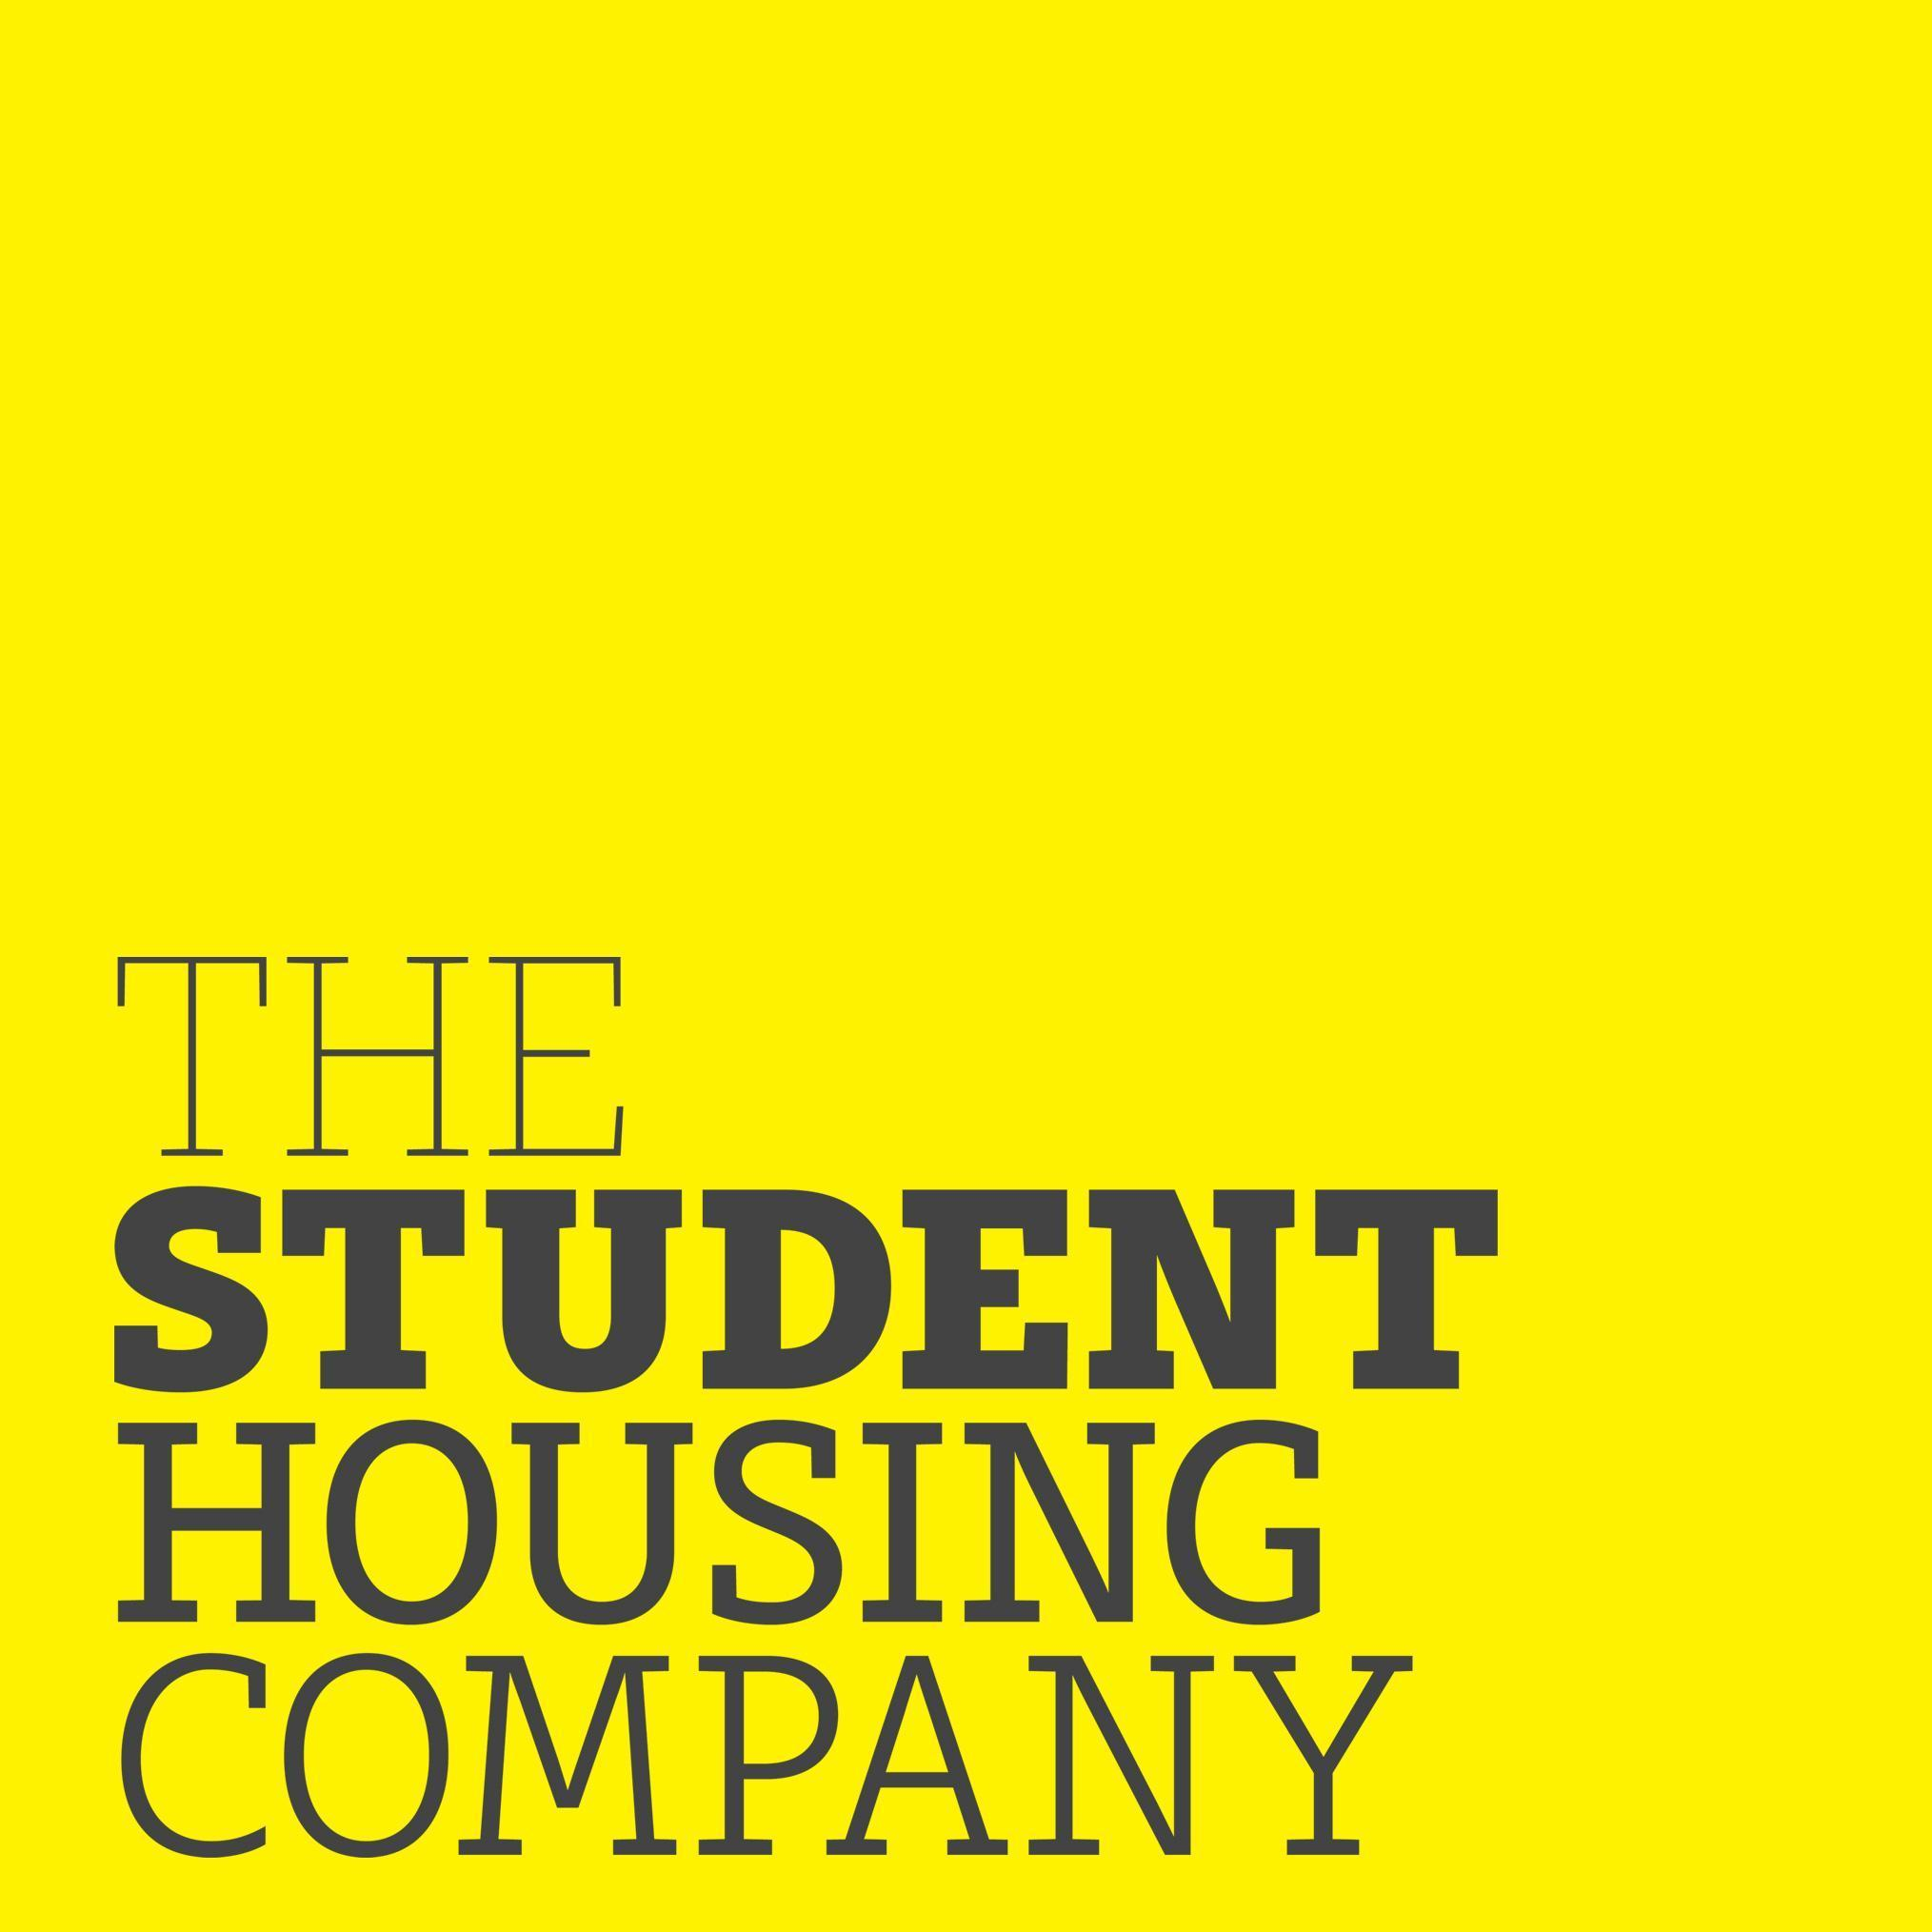 the-student-housing-company_owler_20160229_224800_original.jpg